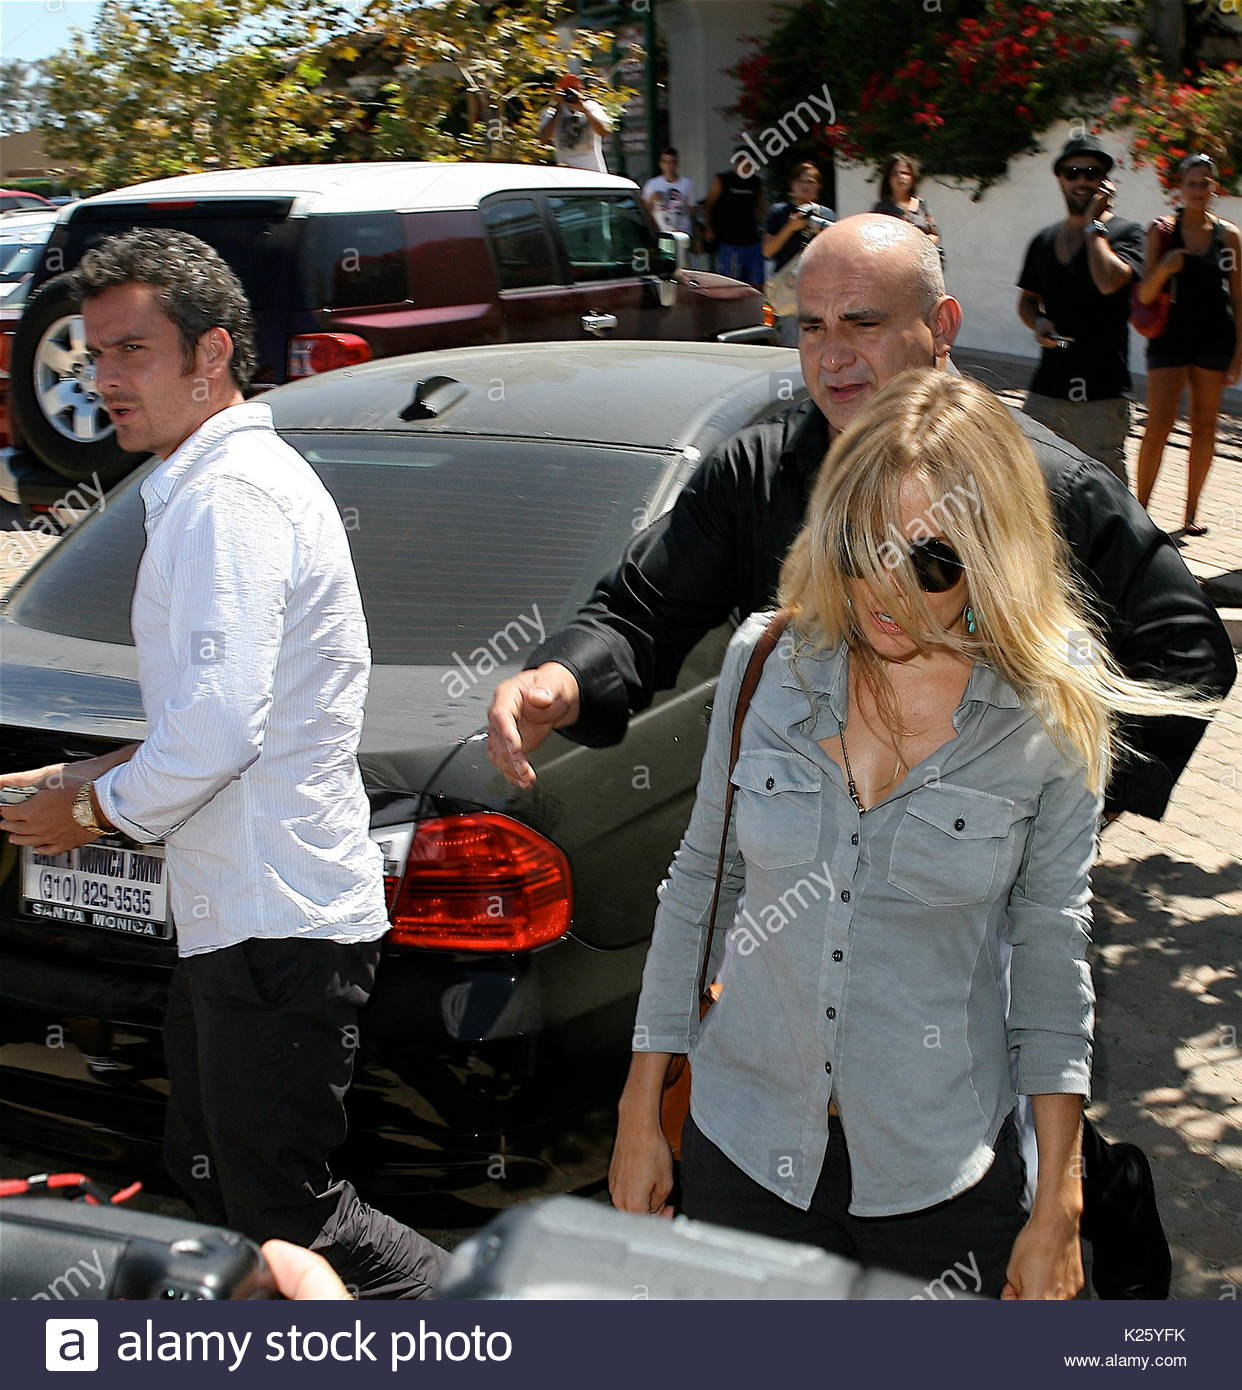 Sienna miller and balthazar getty stock photos sienna miller and sienna miller and balthazar getty sienna miller and balthazar getty went off in opposite directions publicscrutiny Images